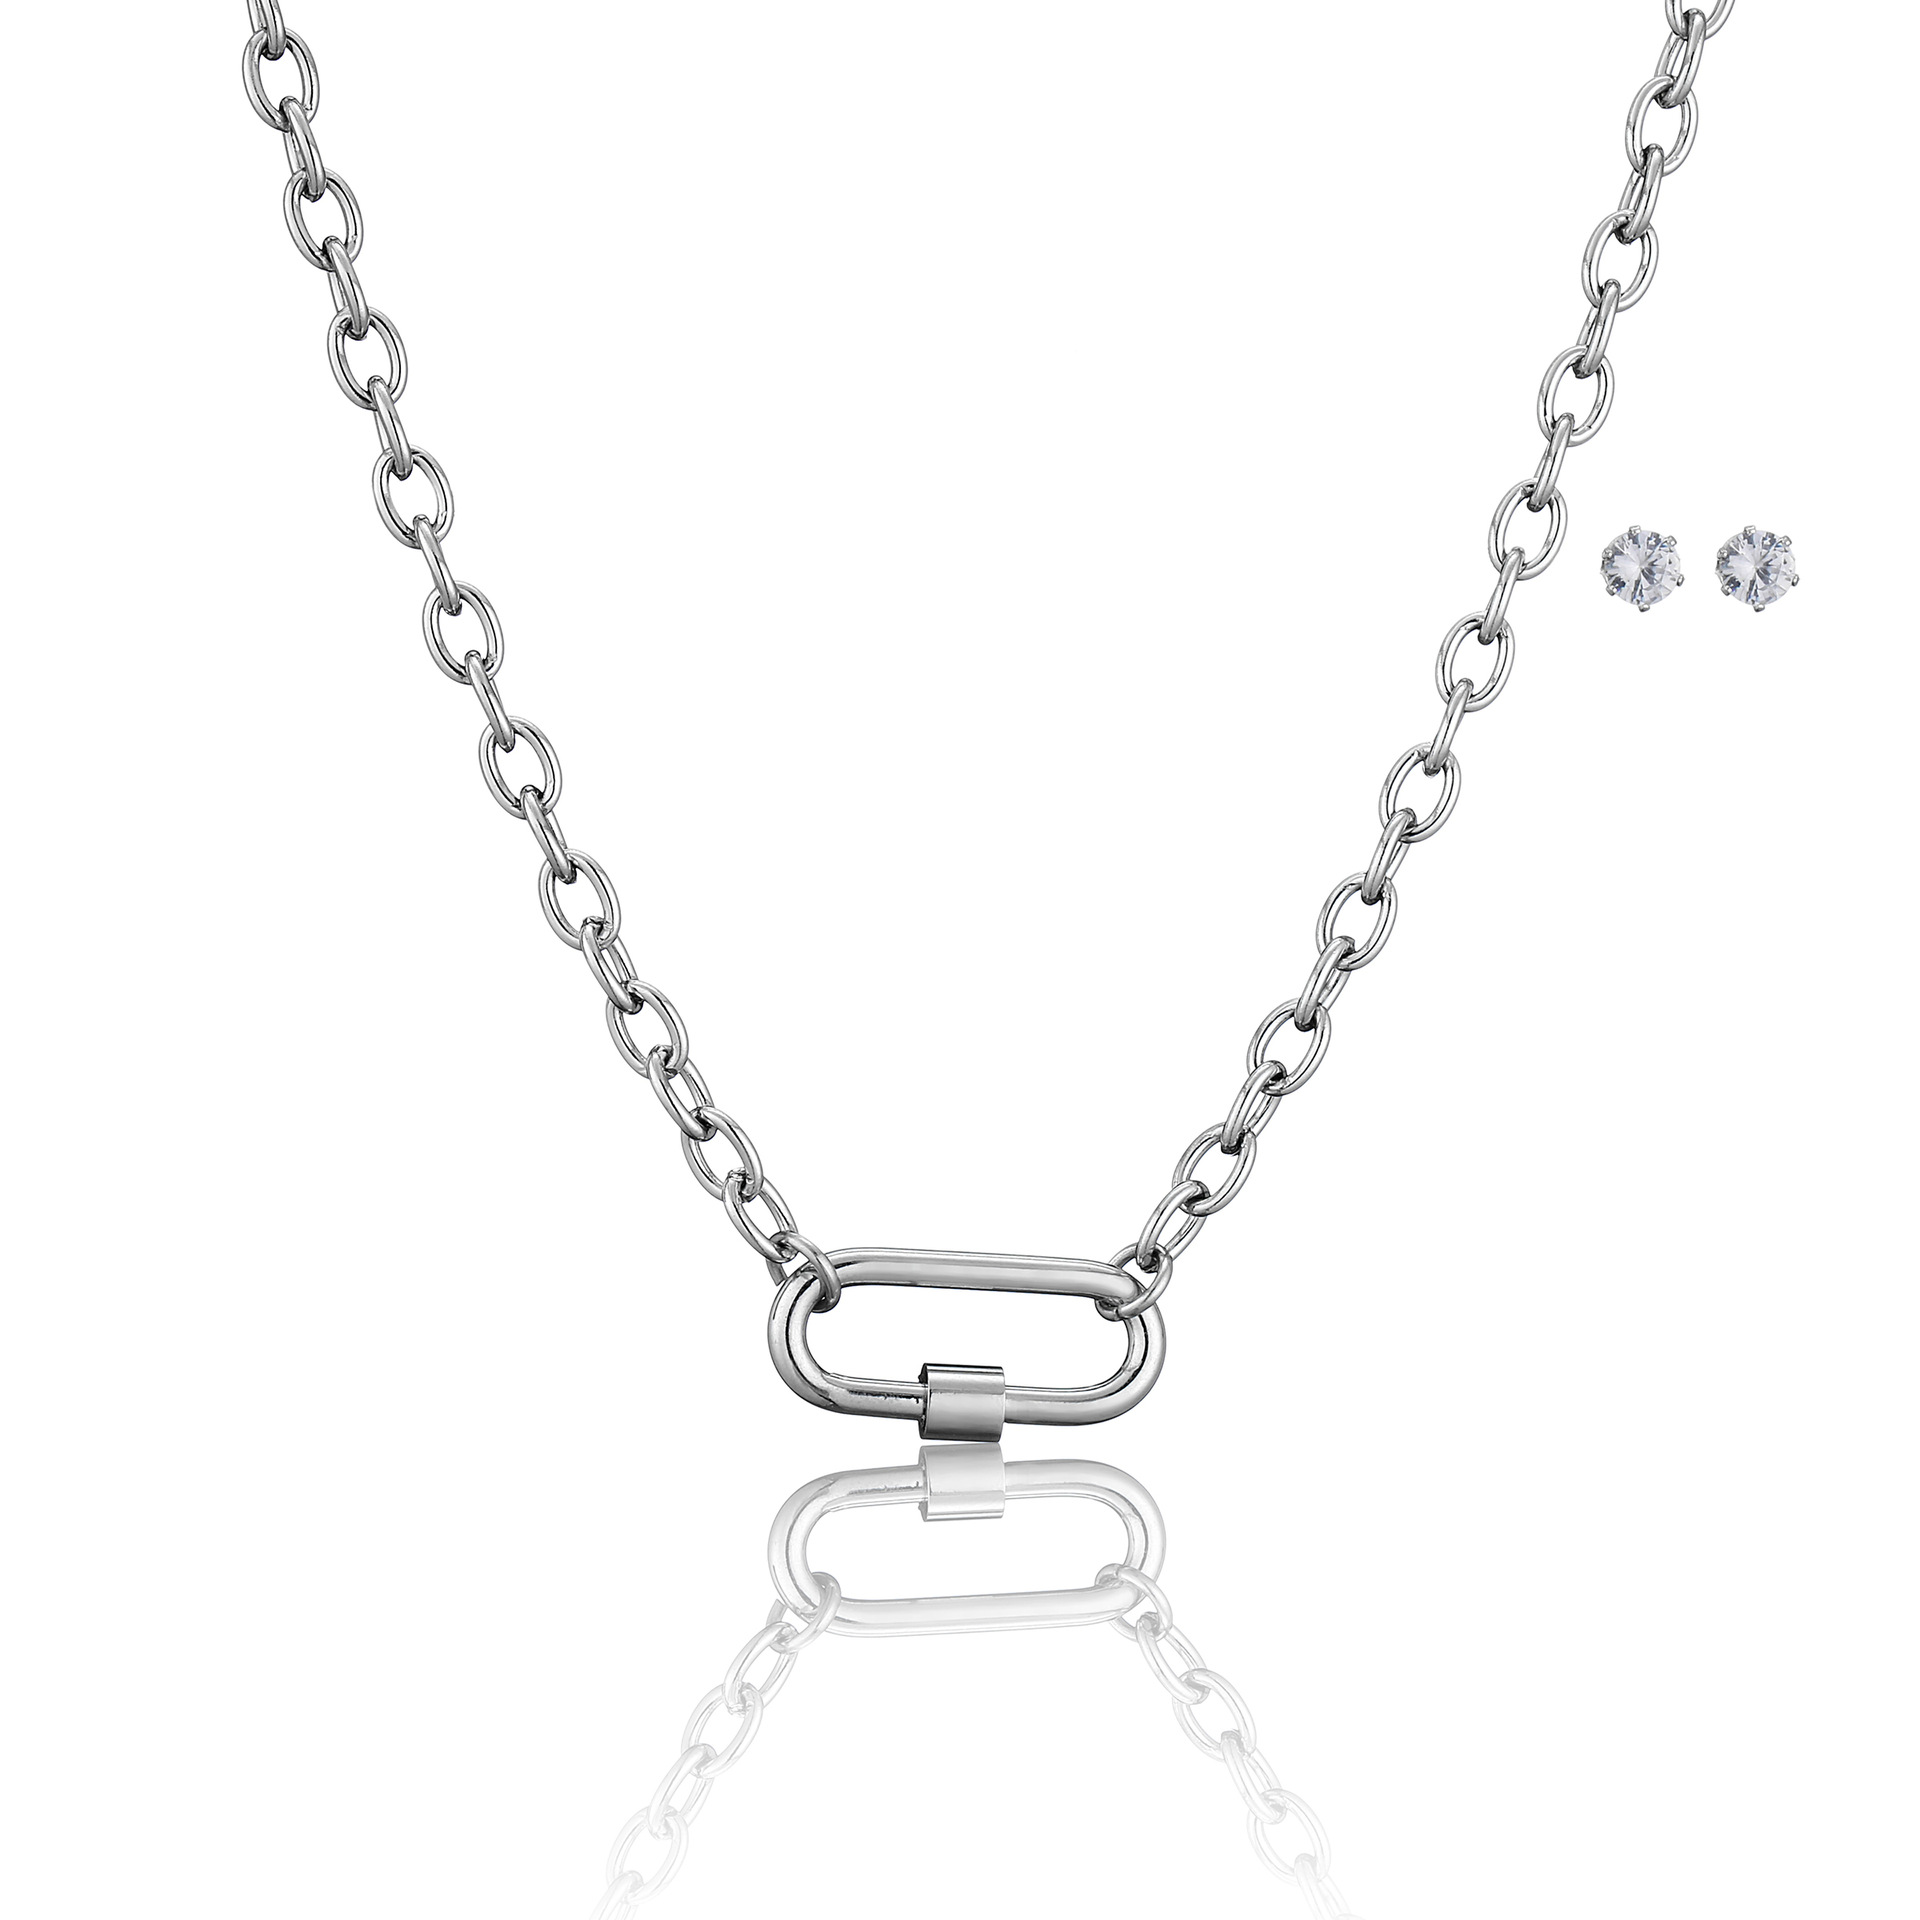 2021 Fashion New Exquisite Safety Pin Jewelry Stainless Steel Safety Pin Necklace Designed for Girls